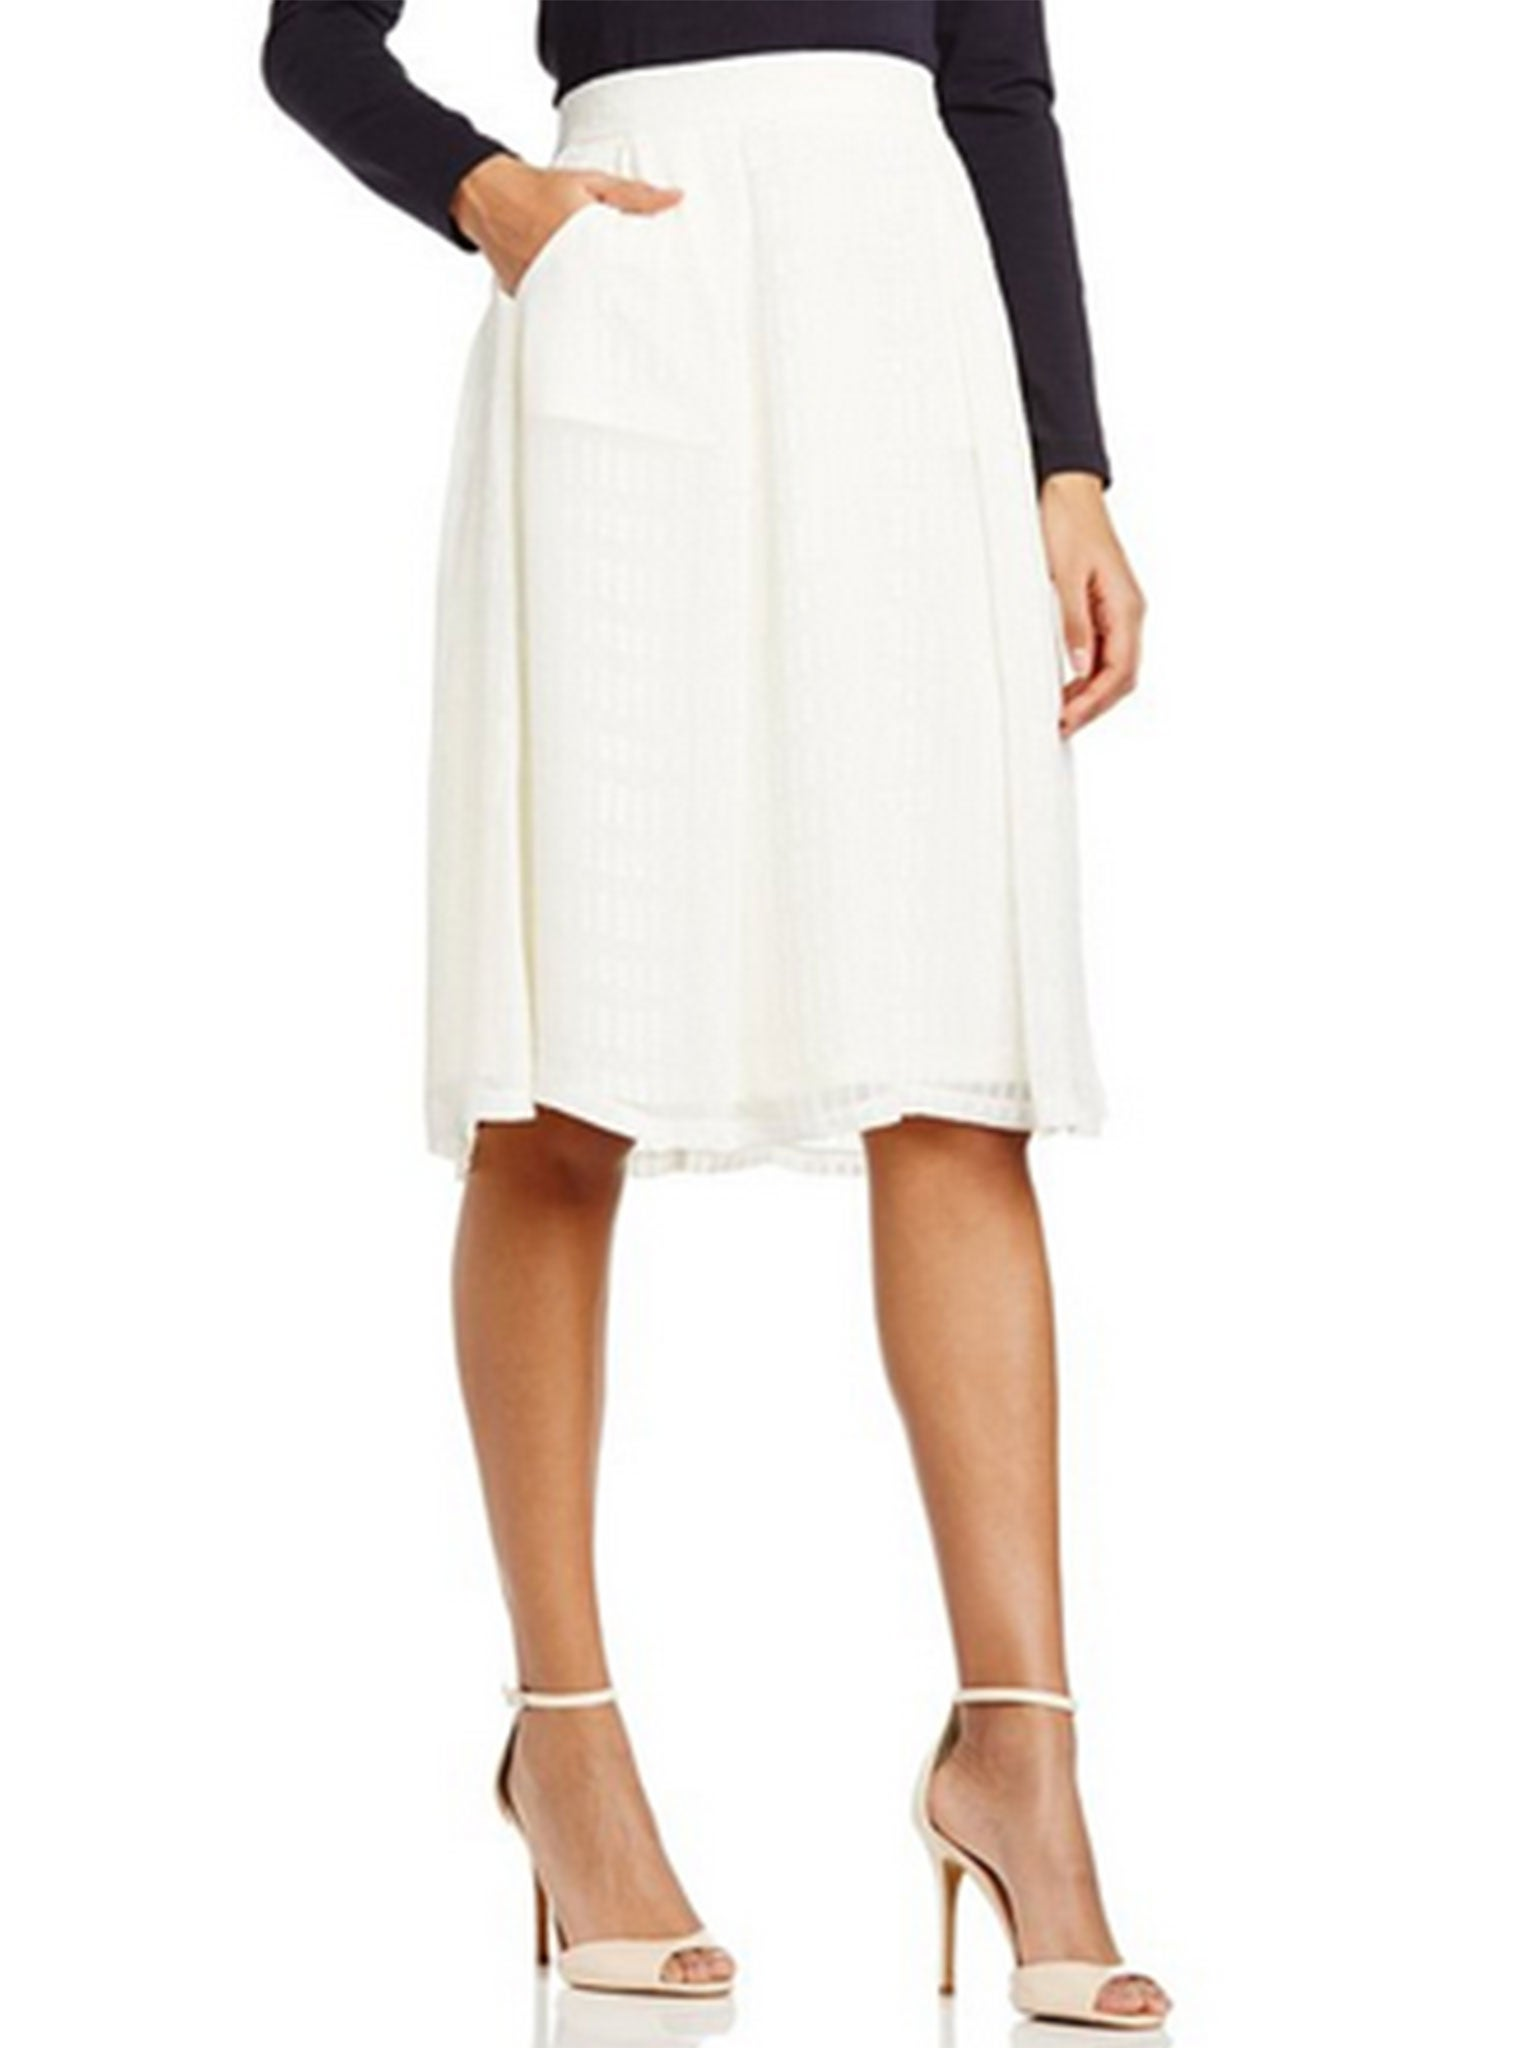 fd8509674f Shopping edit  What to buy from Amazon Fashion right now